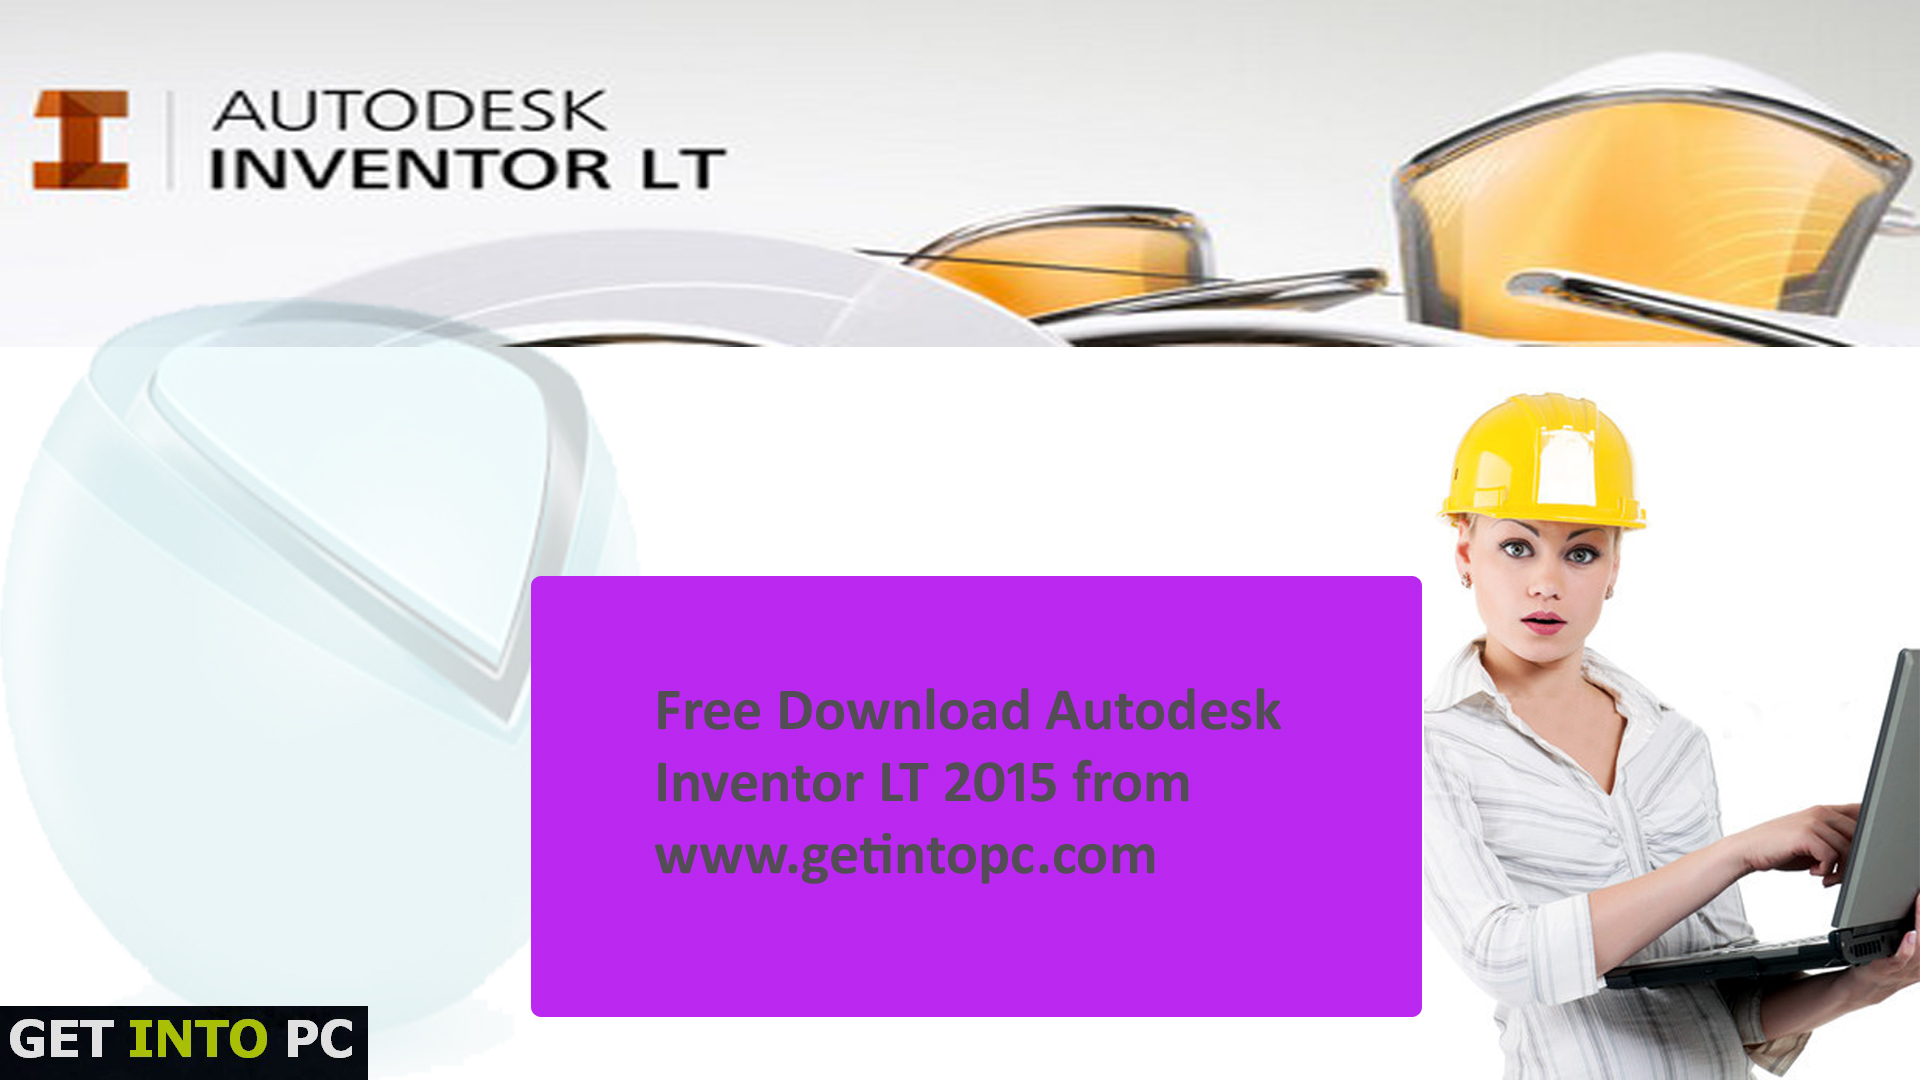 Autodesk Inventor LT Download For Free